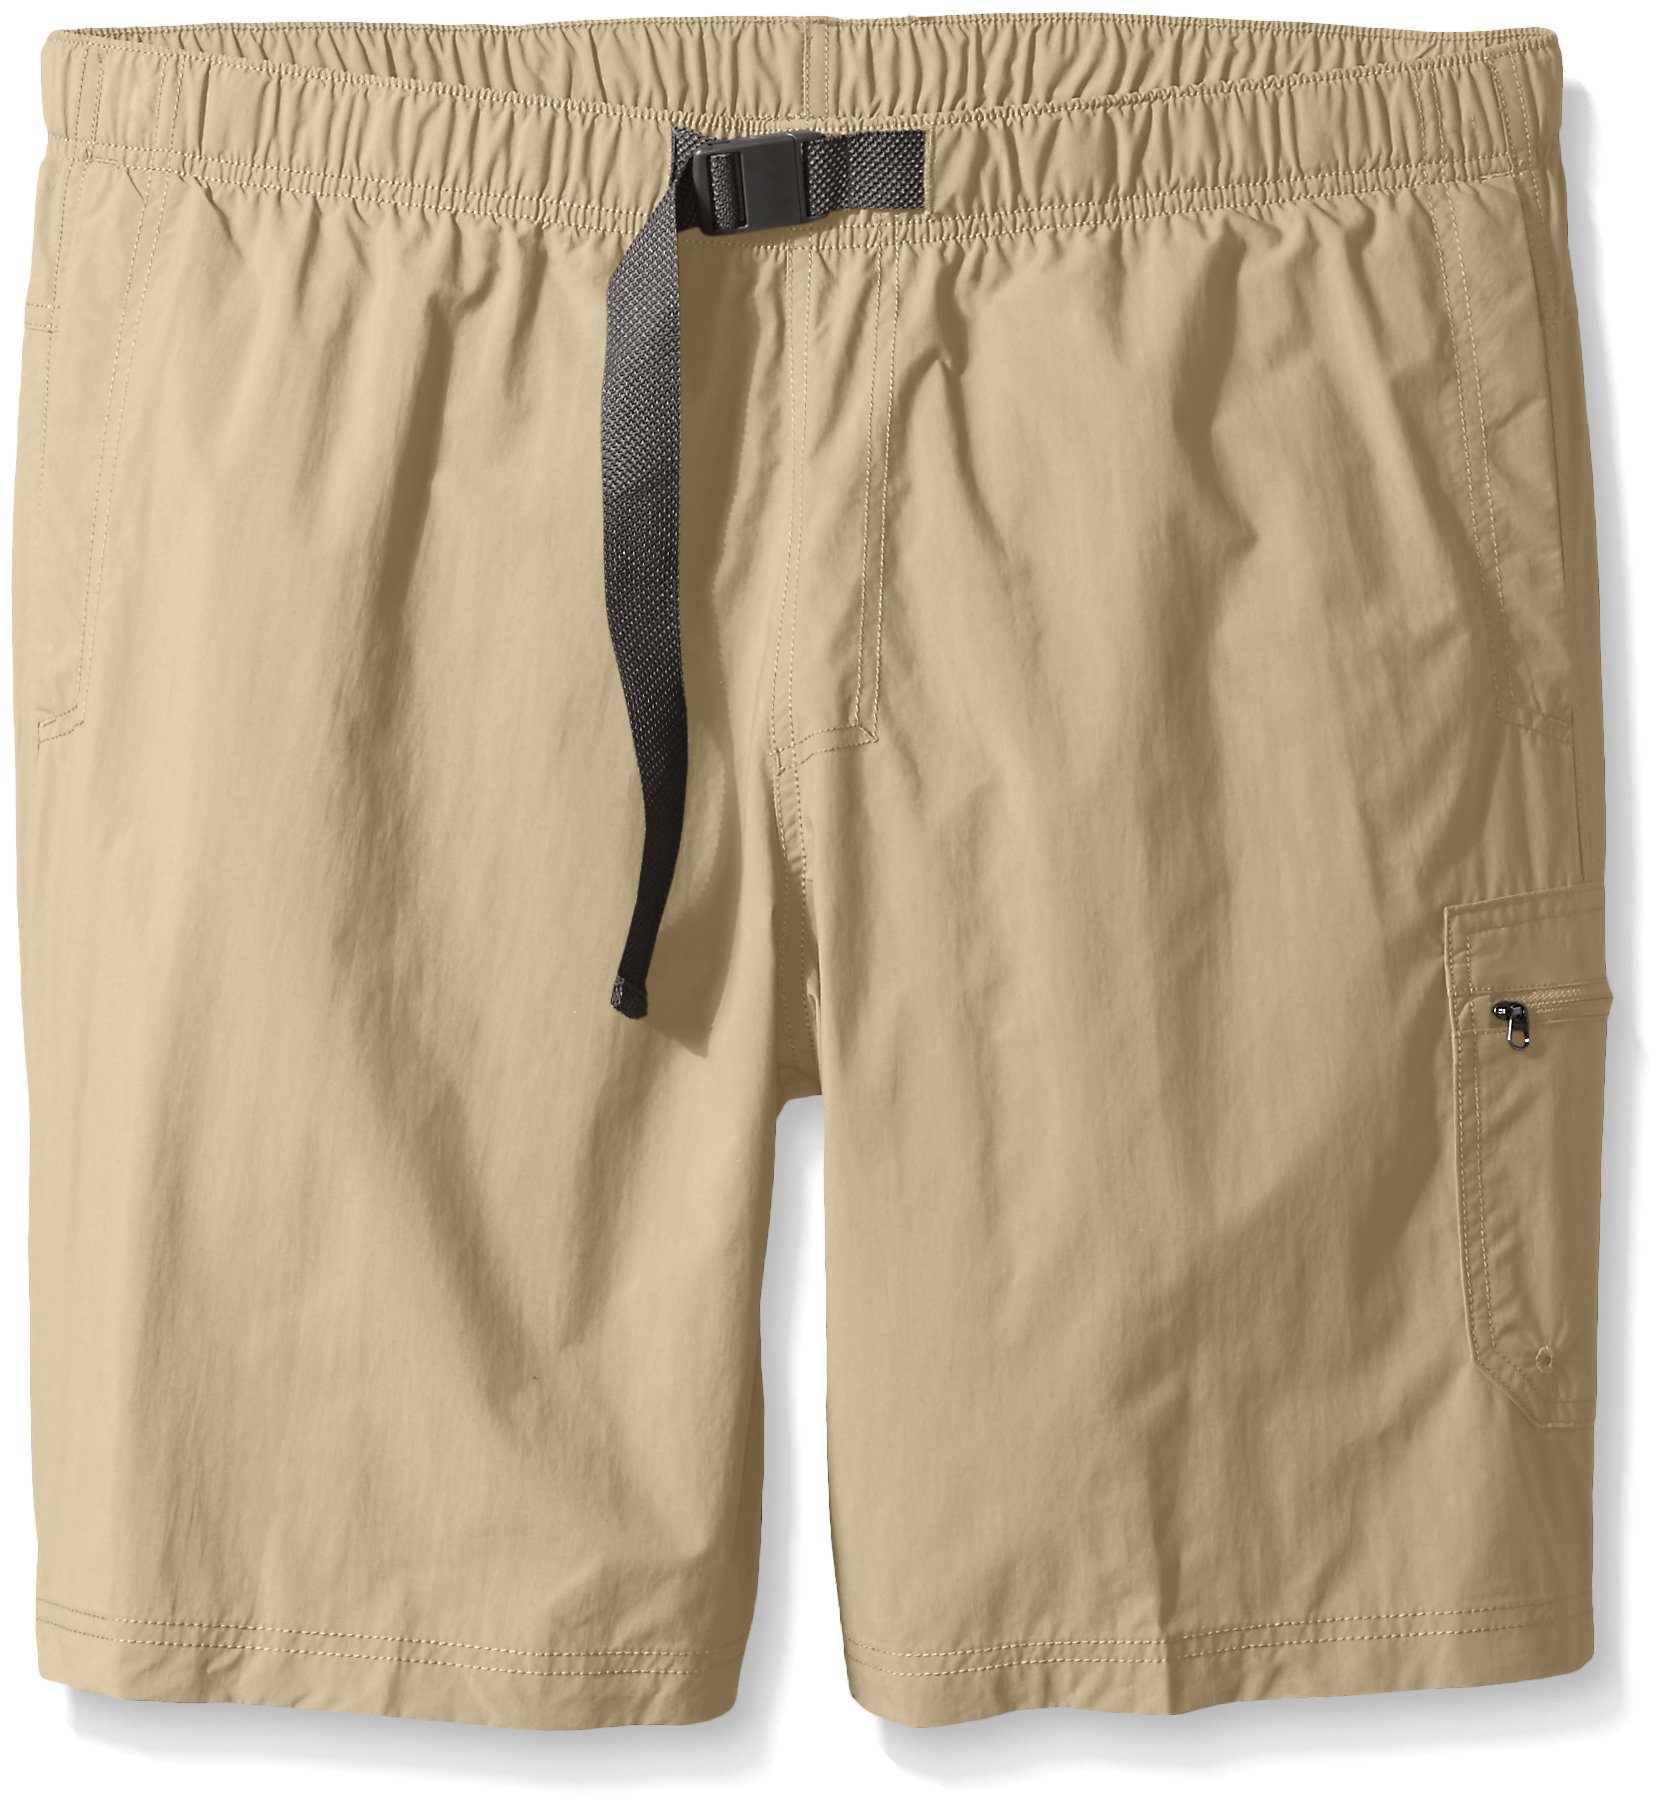 Columbia Men's Palmerston Peak Short, Waterproof, UV Sun Protection, Twill, 3X x 9'' Inseam by Columbia